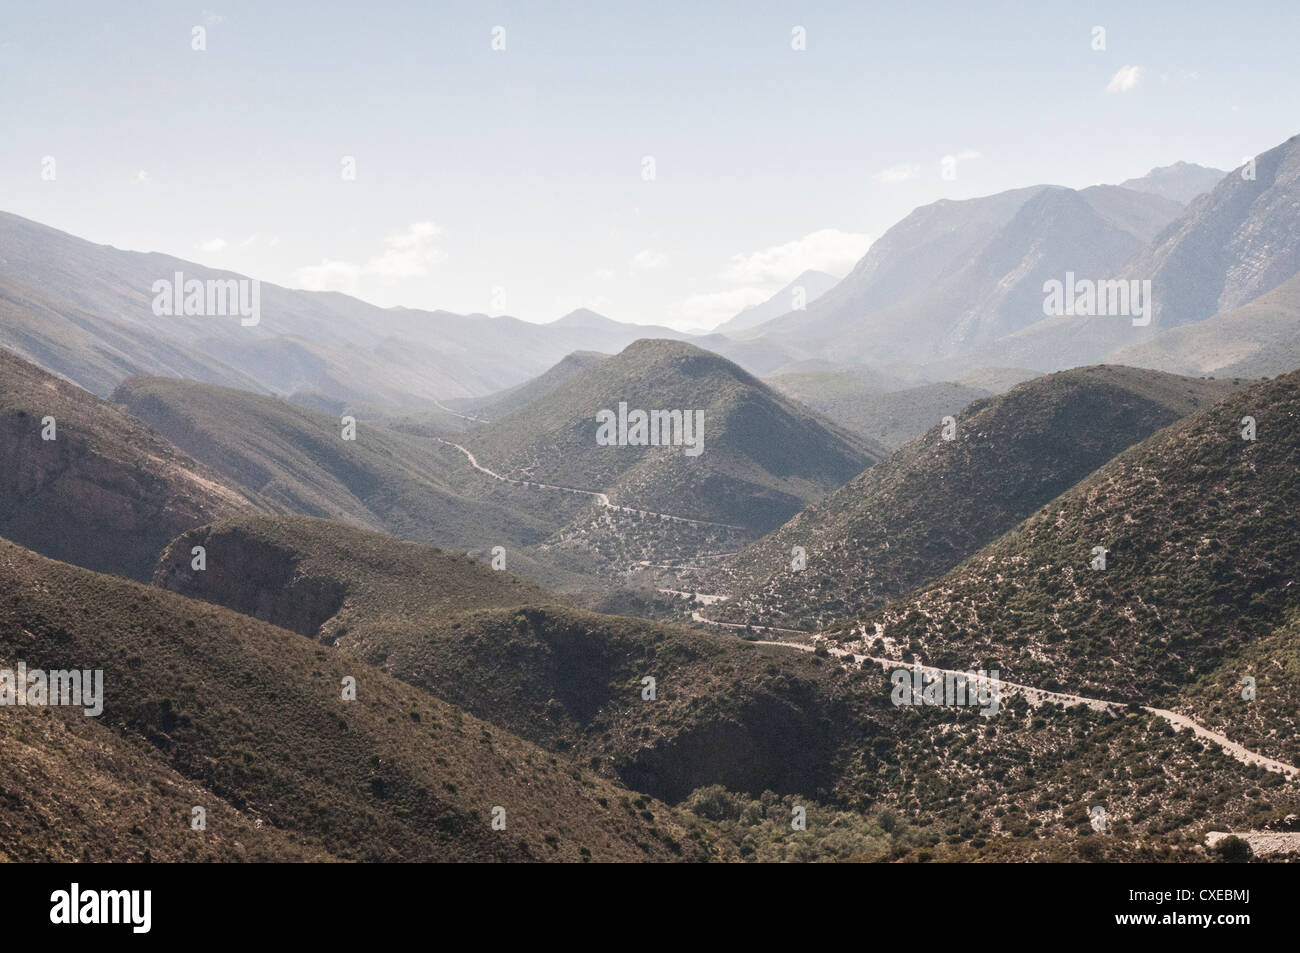 The Hell, South Africa, Gamkaskloof, Swartberg reserve, valley, Oudtshoorn district between the Great and Klein - Stock Image